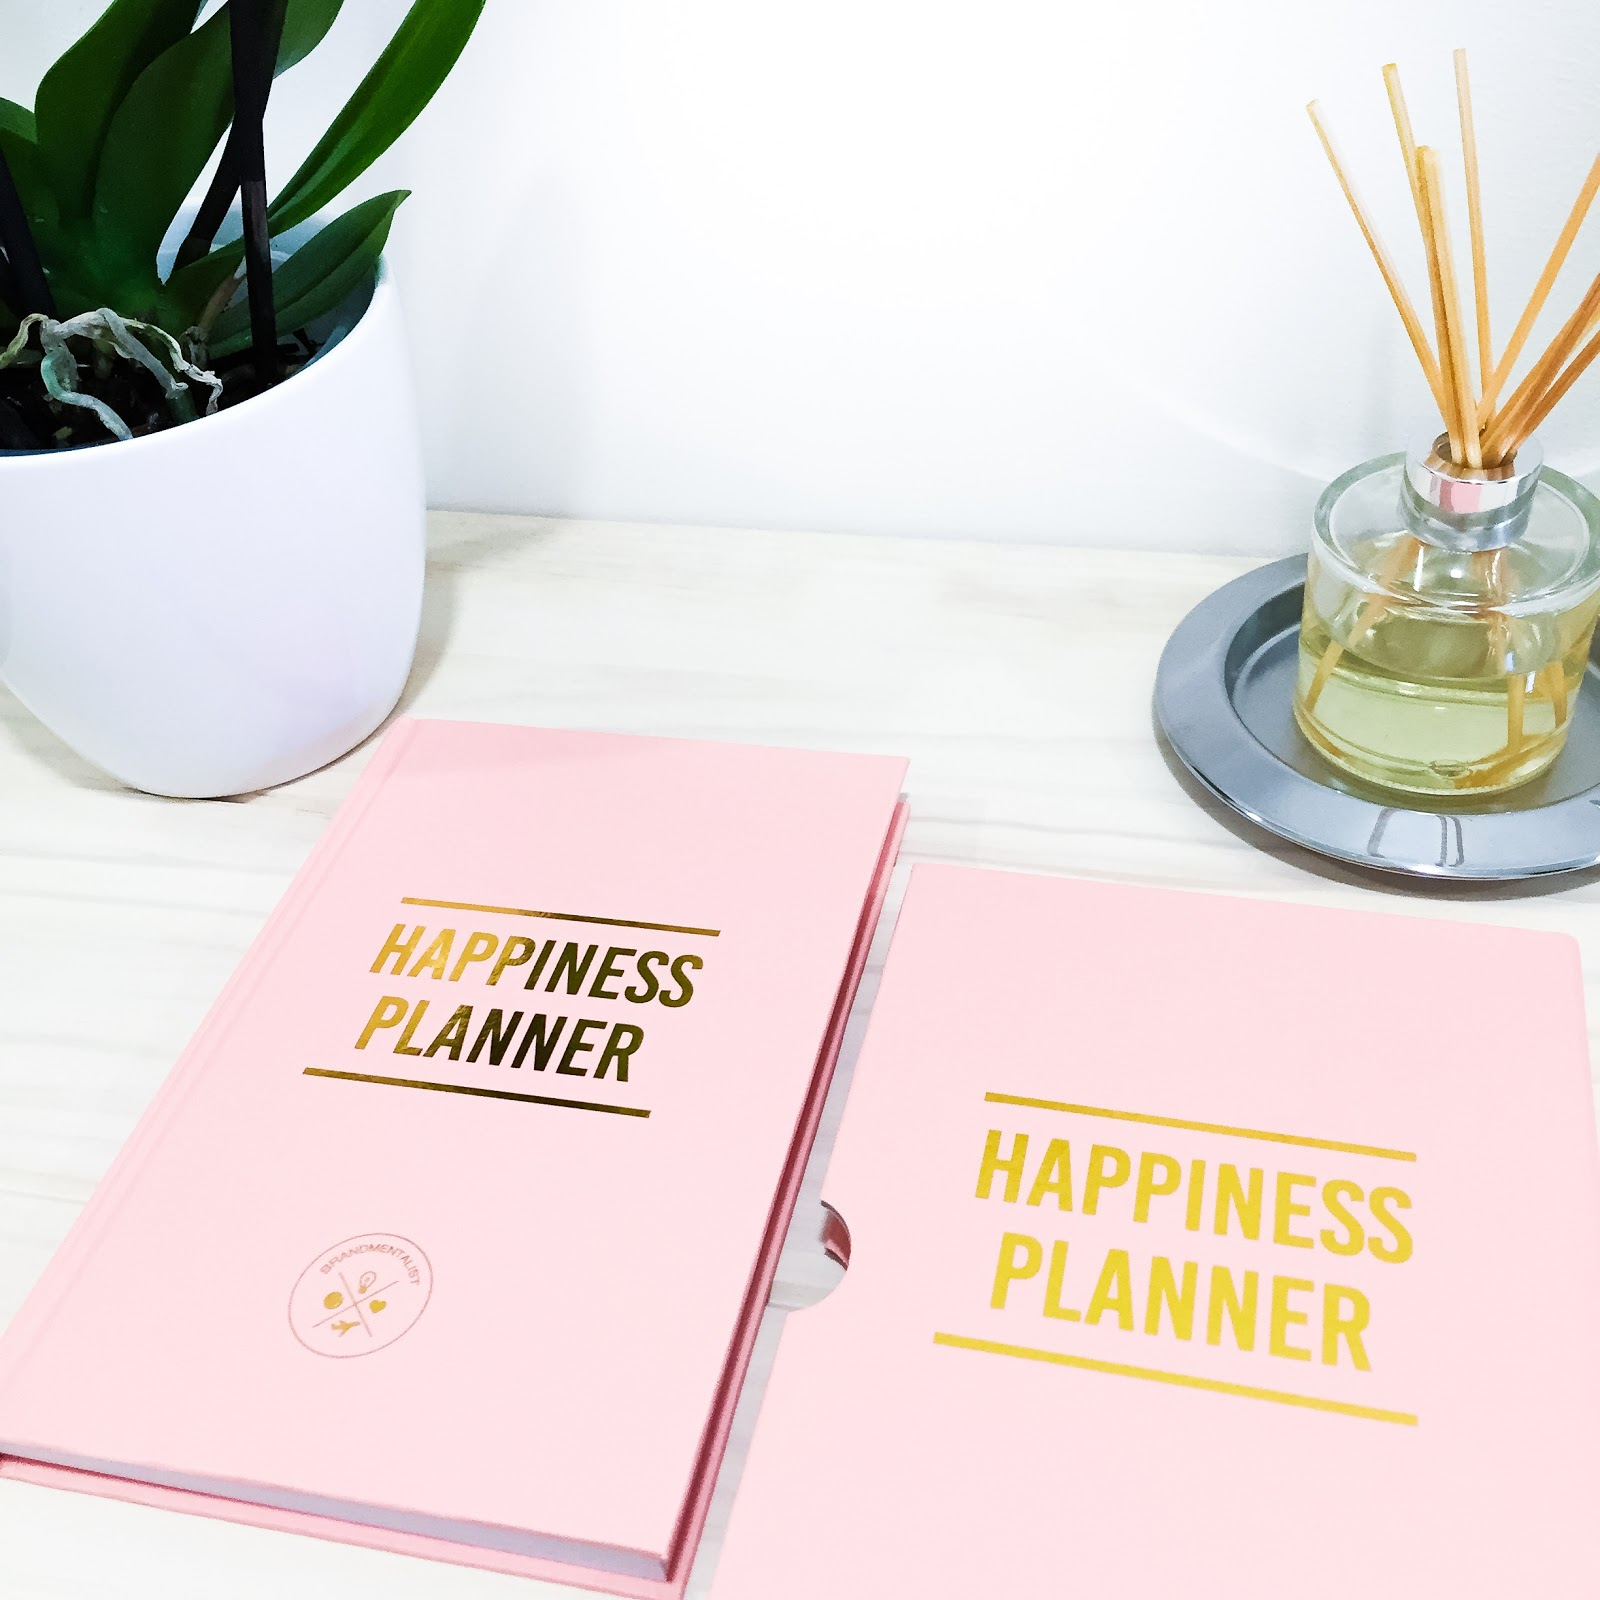 The Happiness Planner - Planning For A More Positive 2016